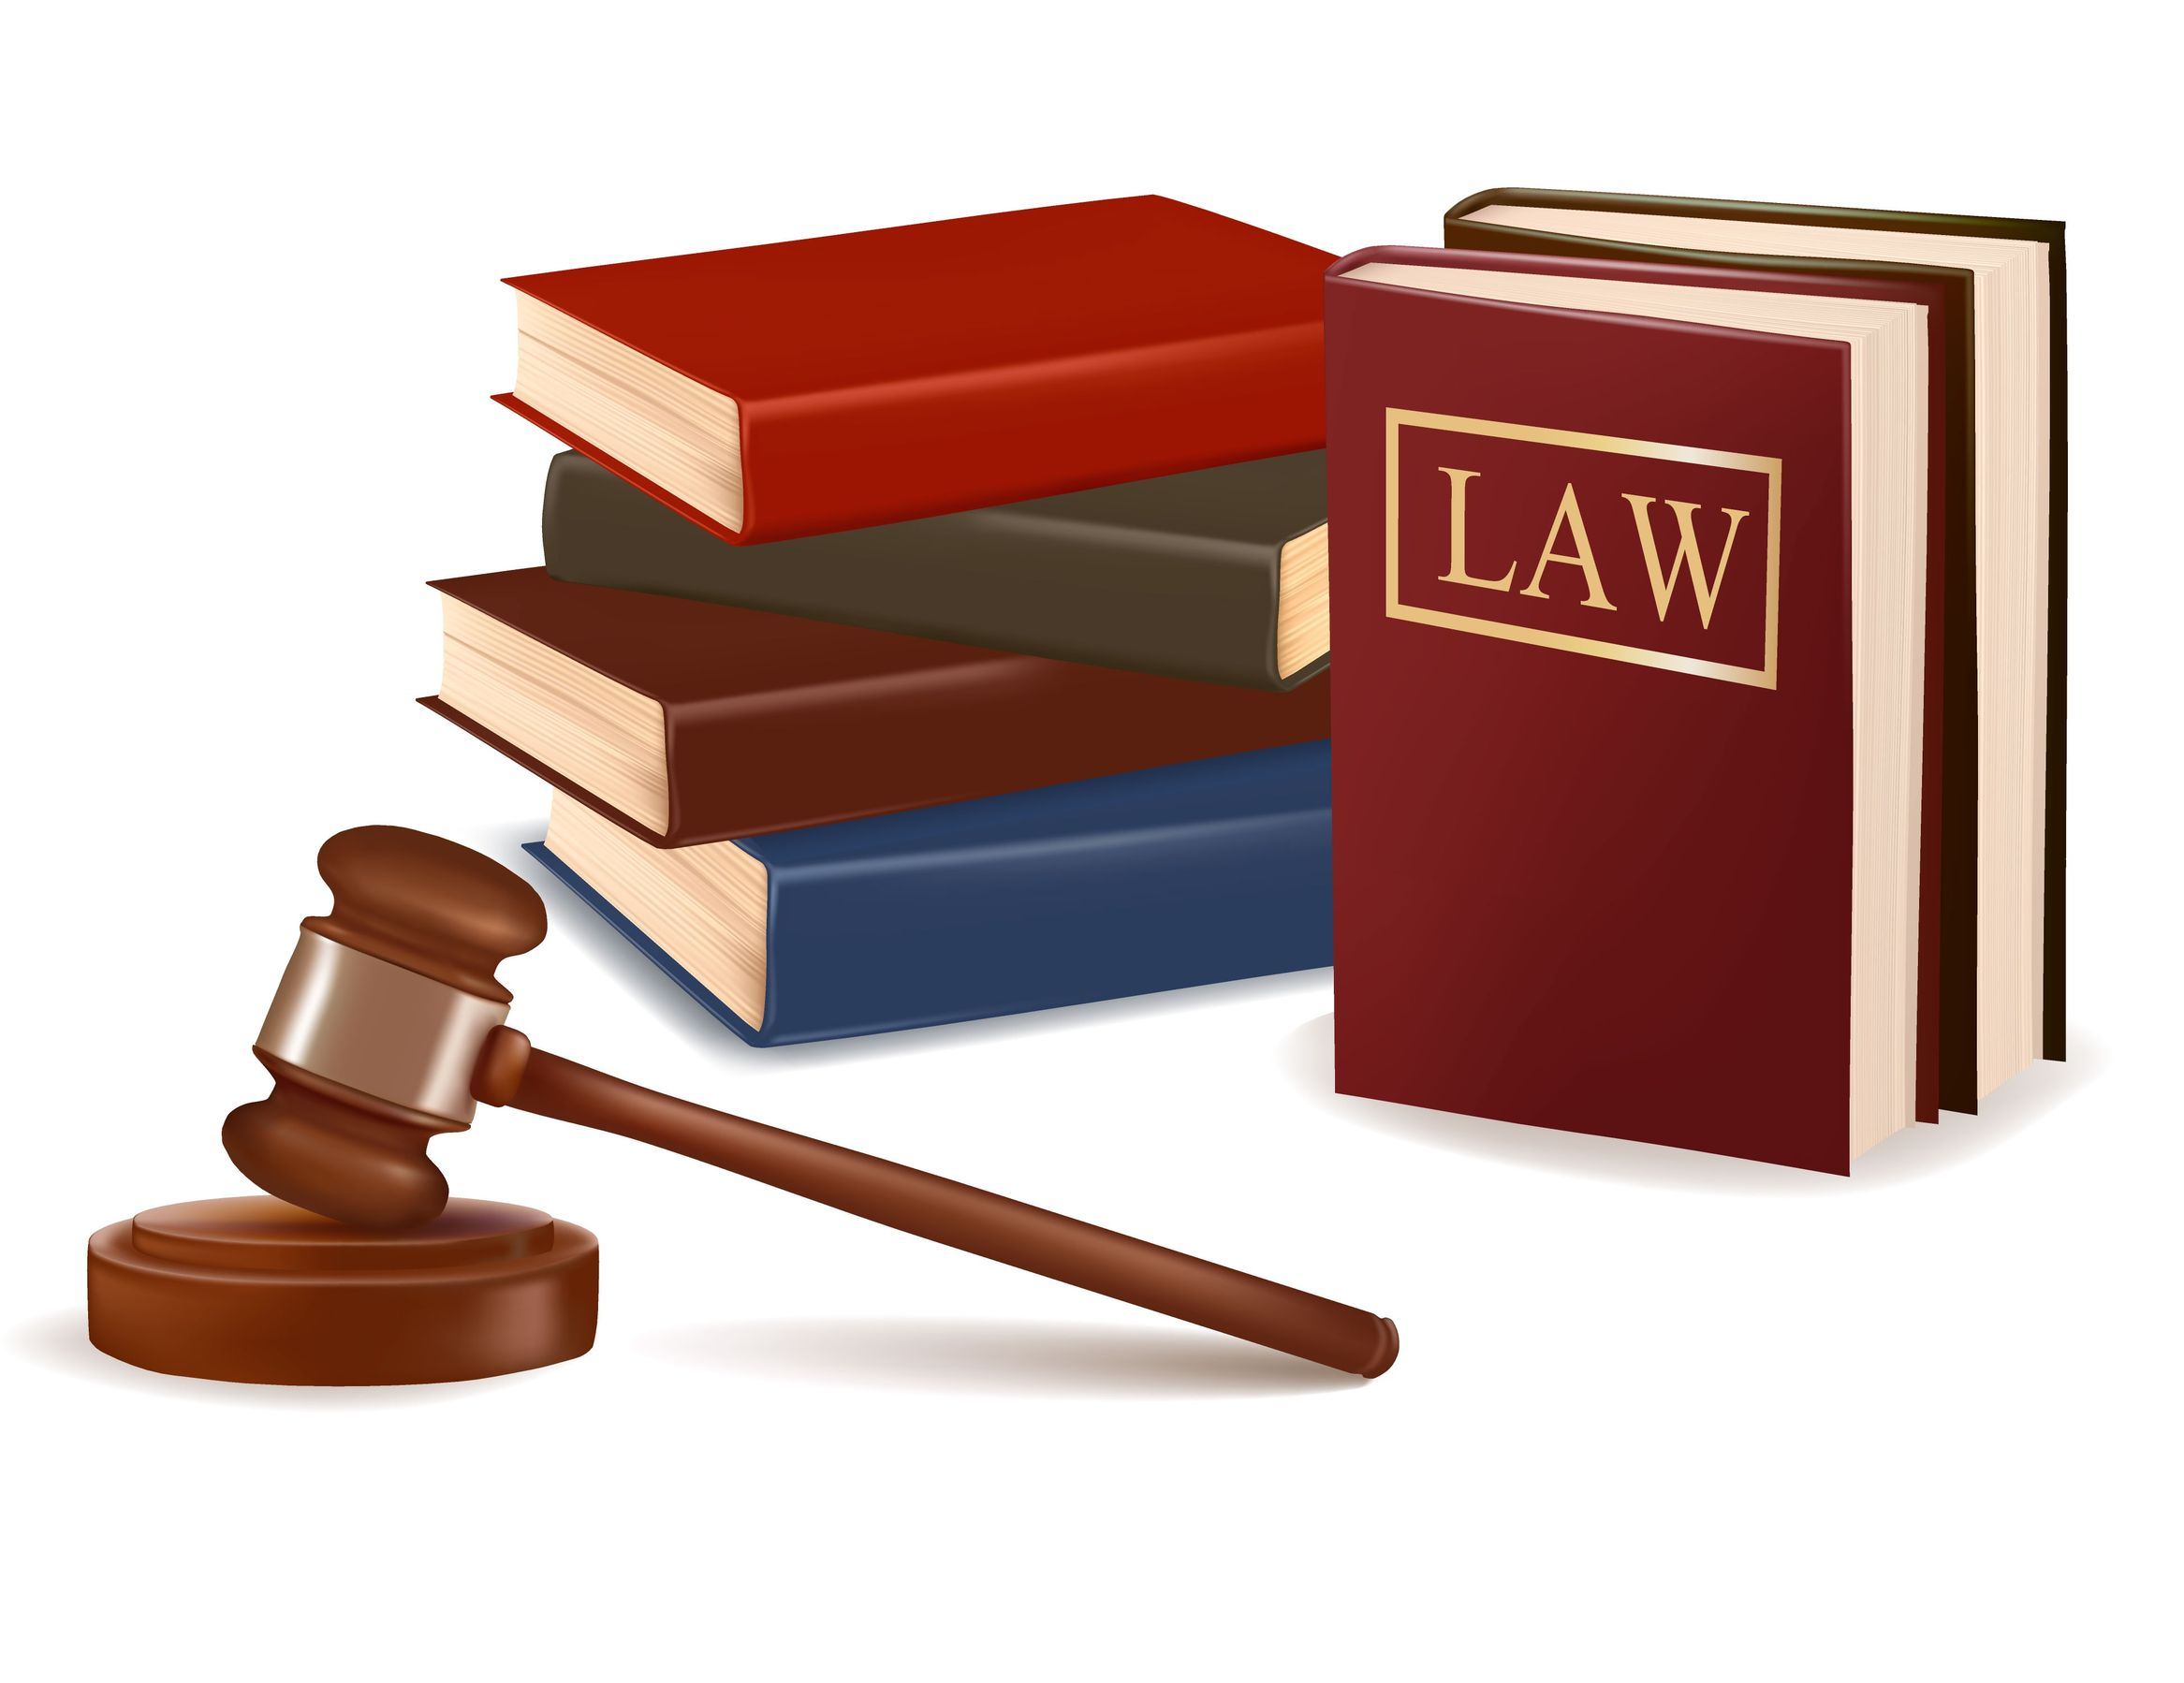 image of gavel-law-books